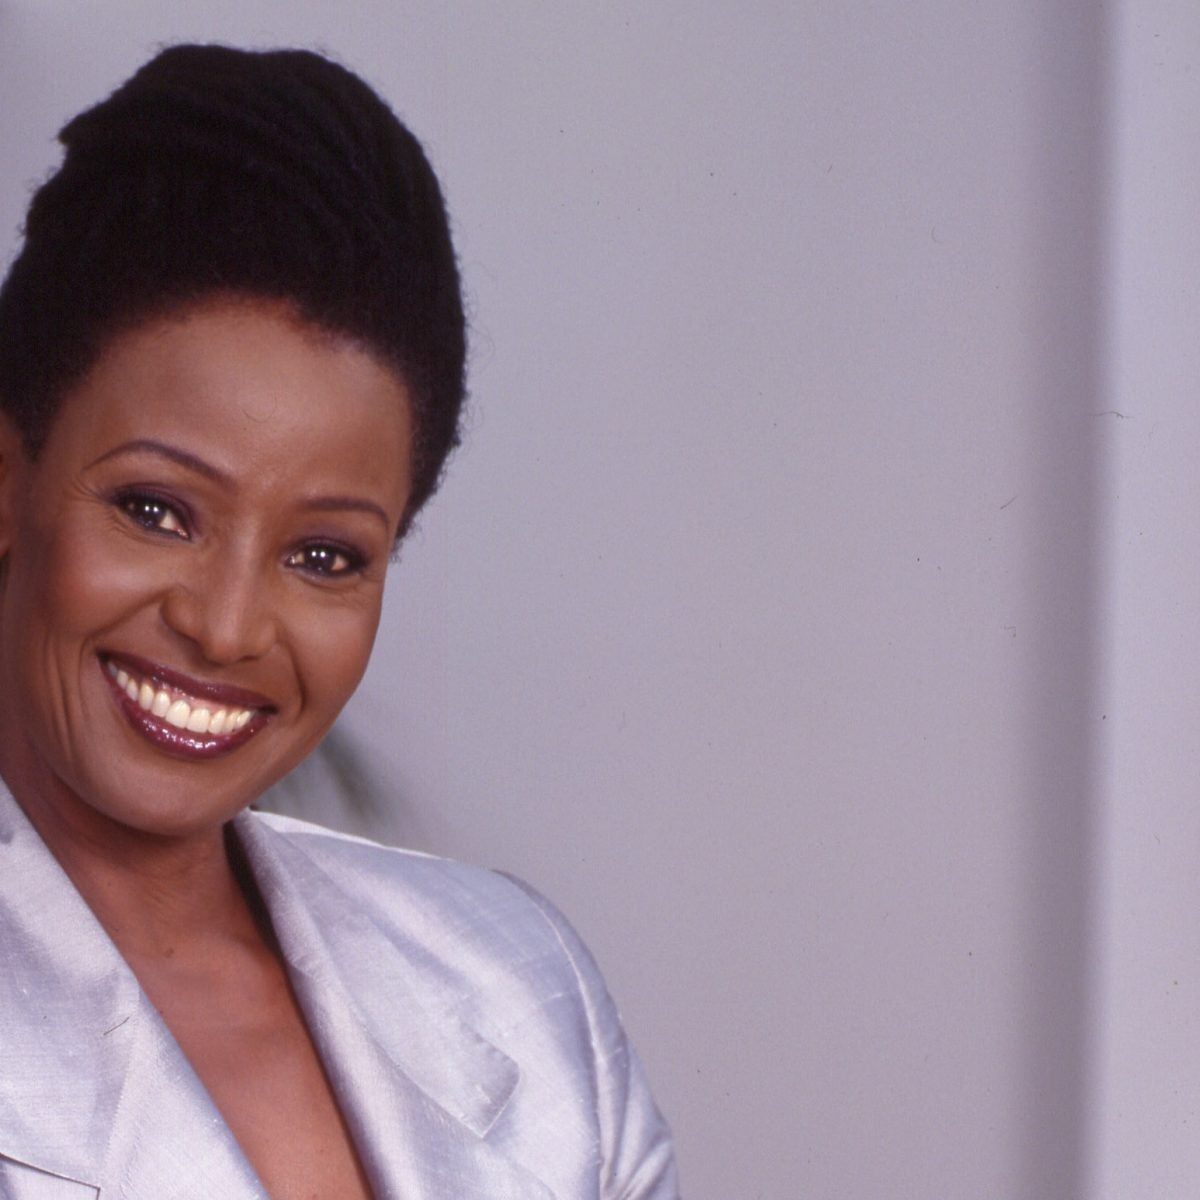 'A Class Act': How B. Smith's Beauty, Style And Grace Touched Us All